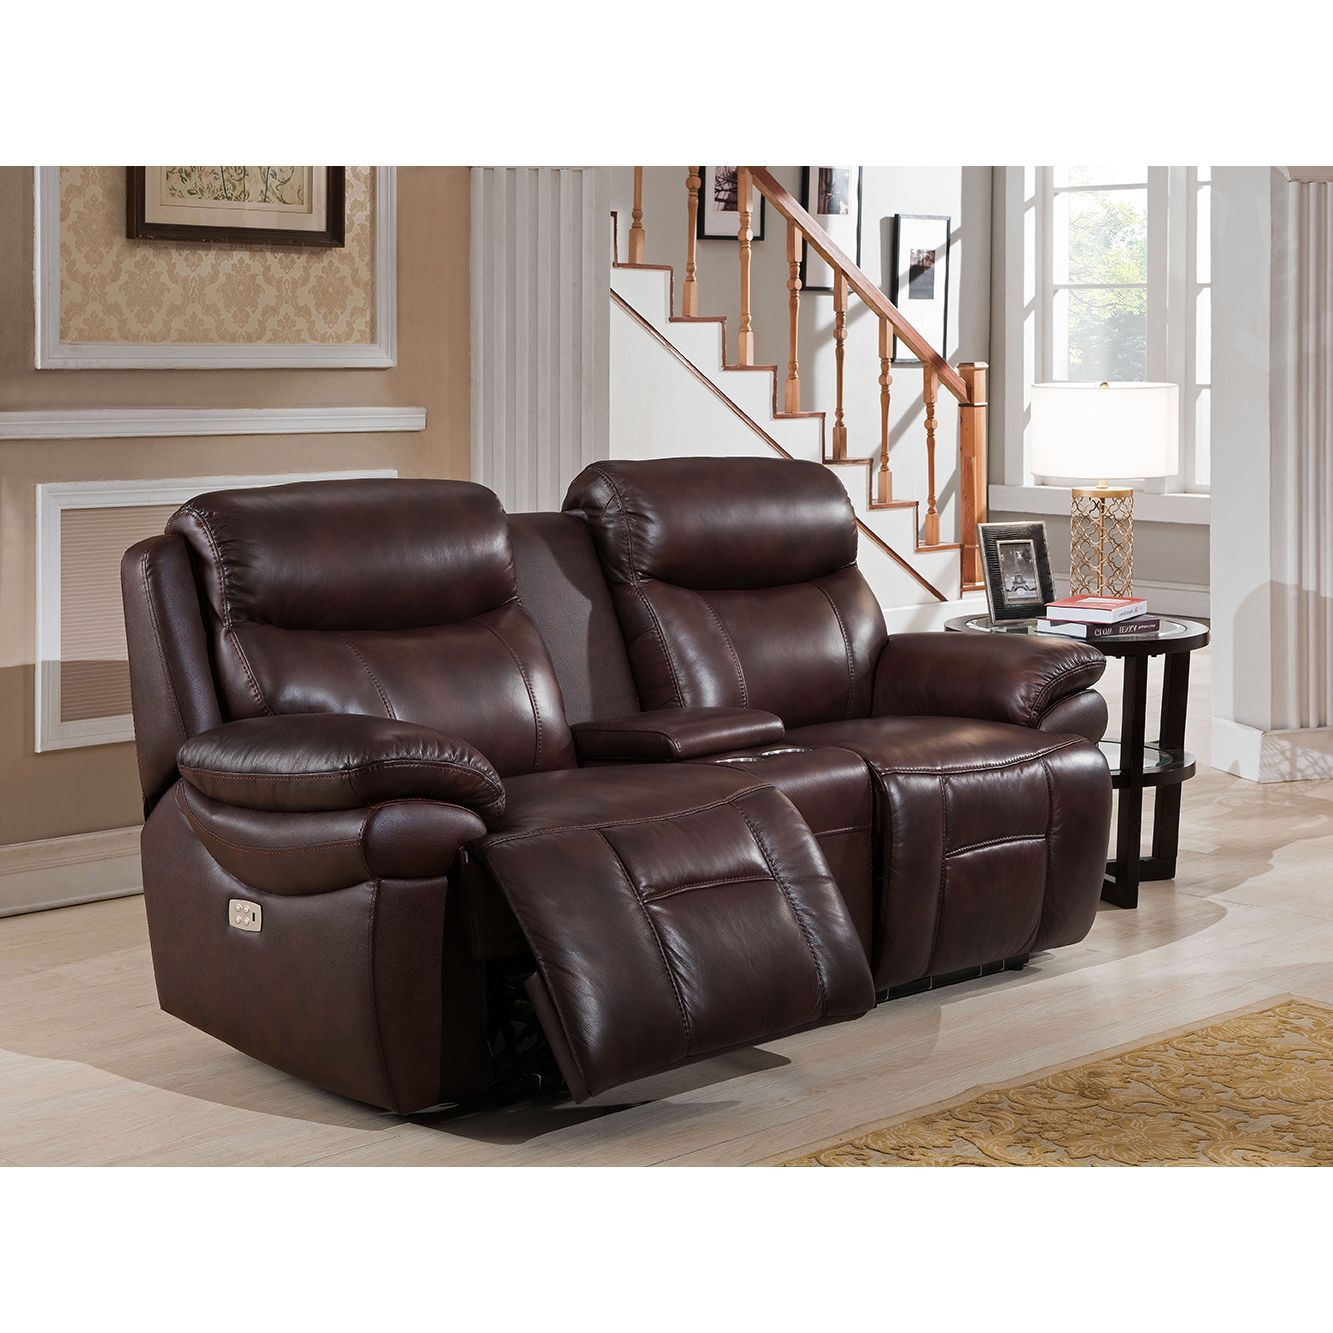 Fantastic Sanford Leather Power Loveseat Recliner With Power Headrests Pdpeps Interior Chair Design Pdpepsorg